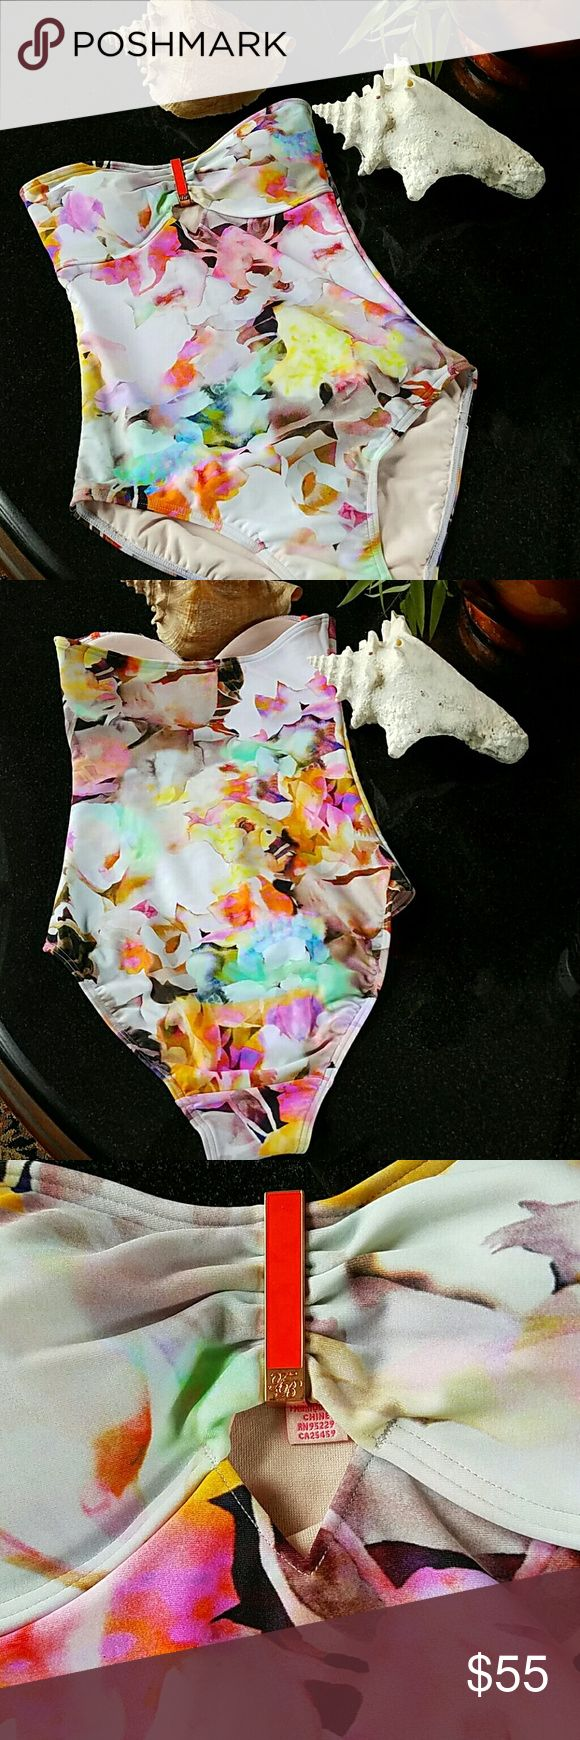 Ted Baker Swim NWOT FEATURES: Women's one-piece swimsuit Bandeau neckline Cut out detail to front Lightly moulded, wired cups Allover watercolour floral print Hand wash MATERIAL: Shell: 80% Polyamide, 20% Elastane; Lining: 100% Polyester Exude demure chic in this Belah swimsuit from Ted Baker. Moulded, wired cups flatter and support while an allover floral print supplies feminine detail. Wear yours with an oversized hat and sunglasses. Labels may be snipped or marked. Ted Baker Swim One…